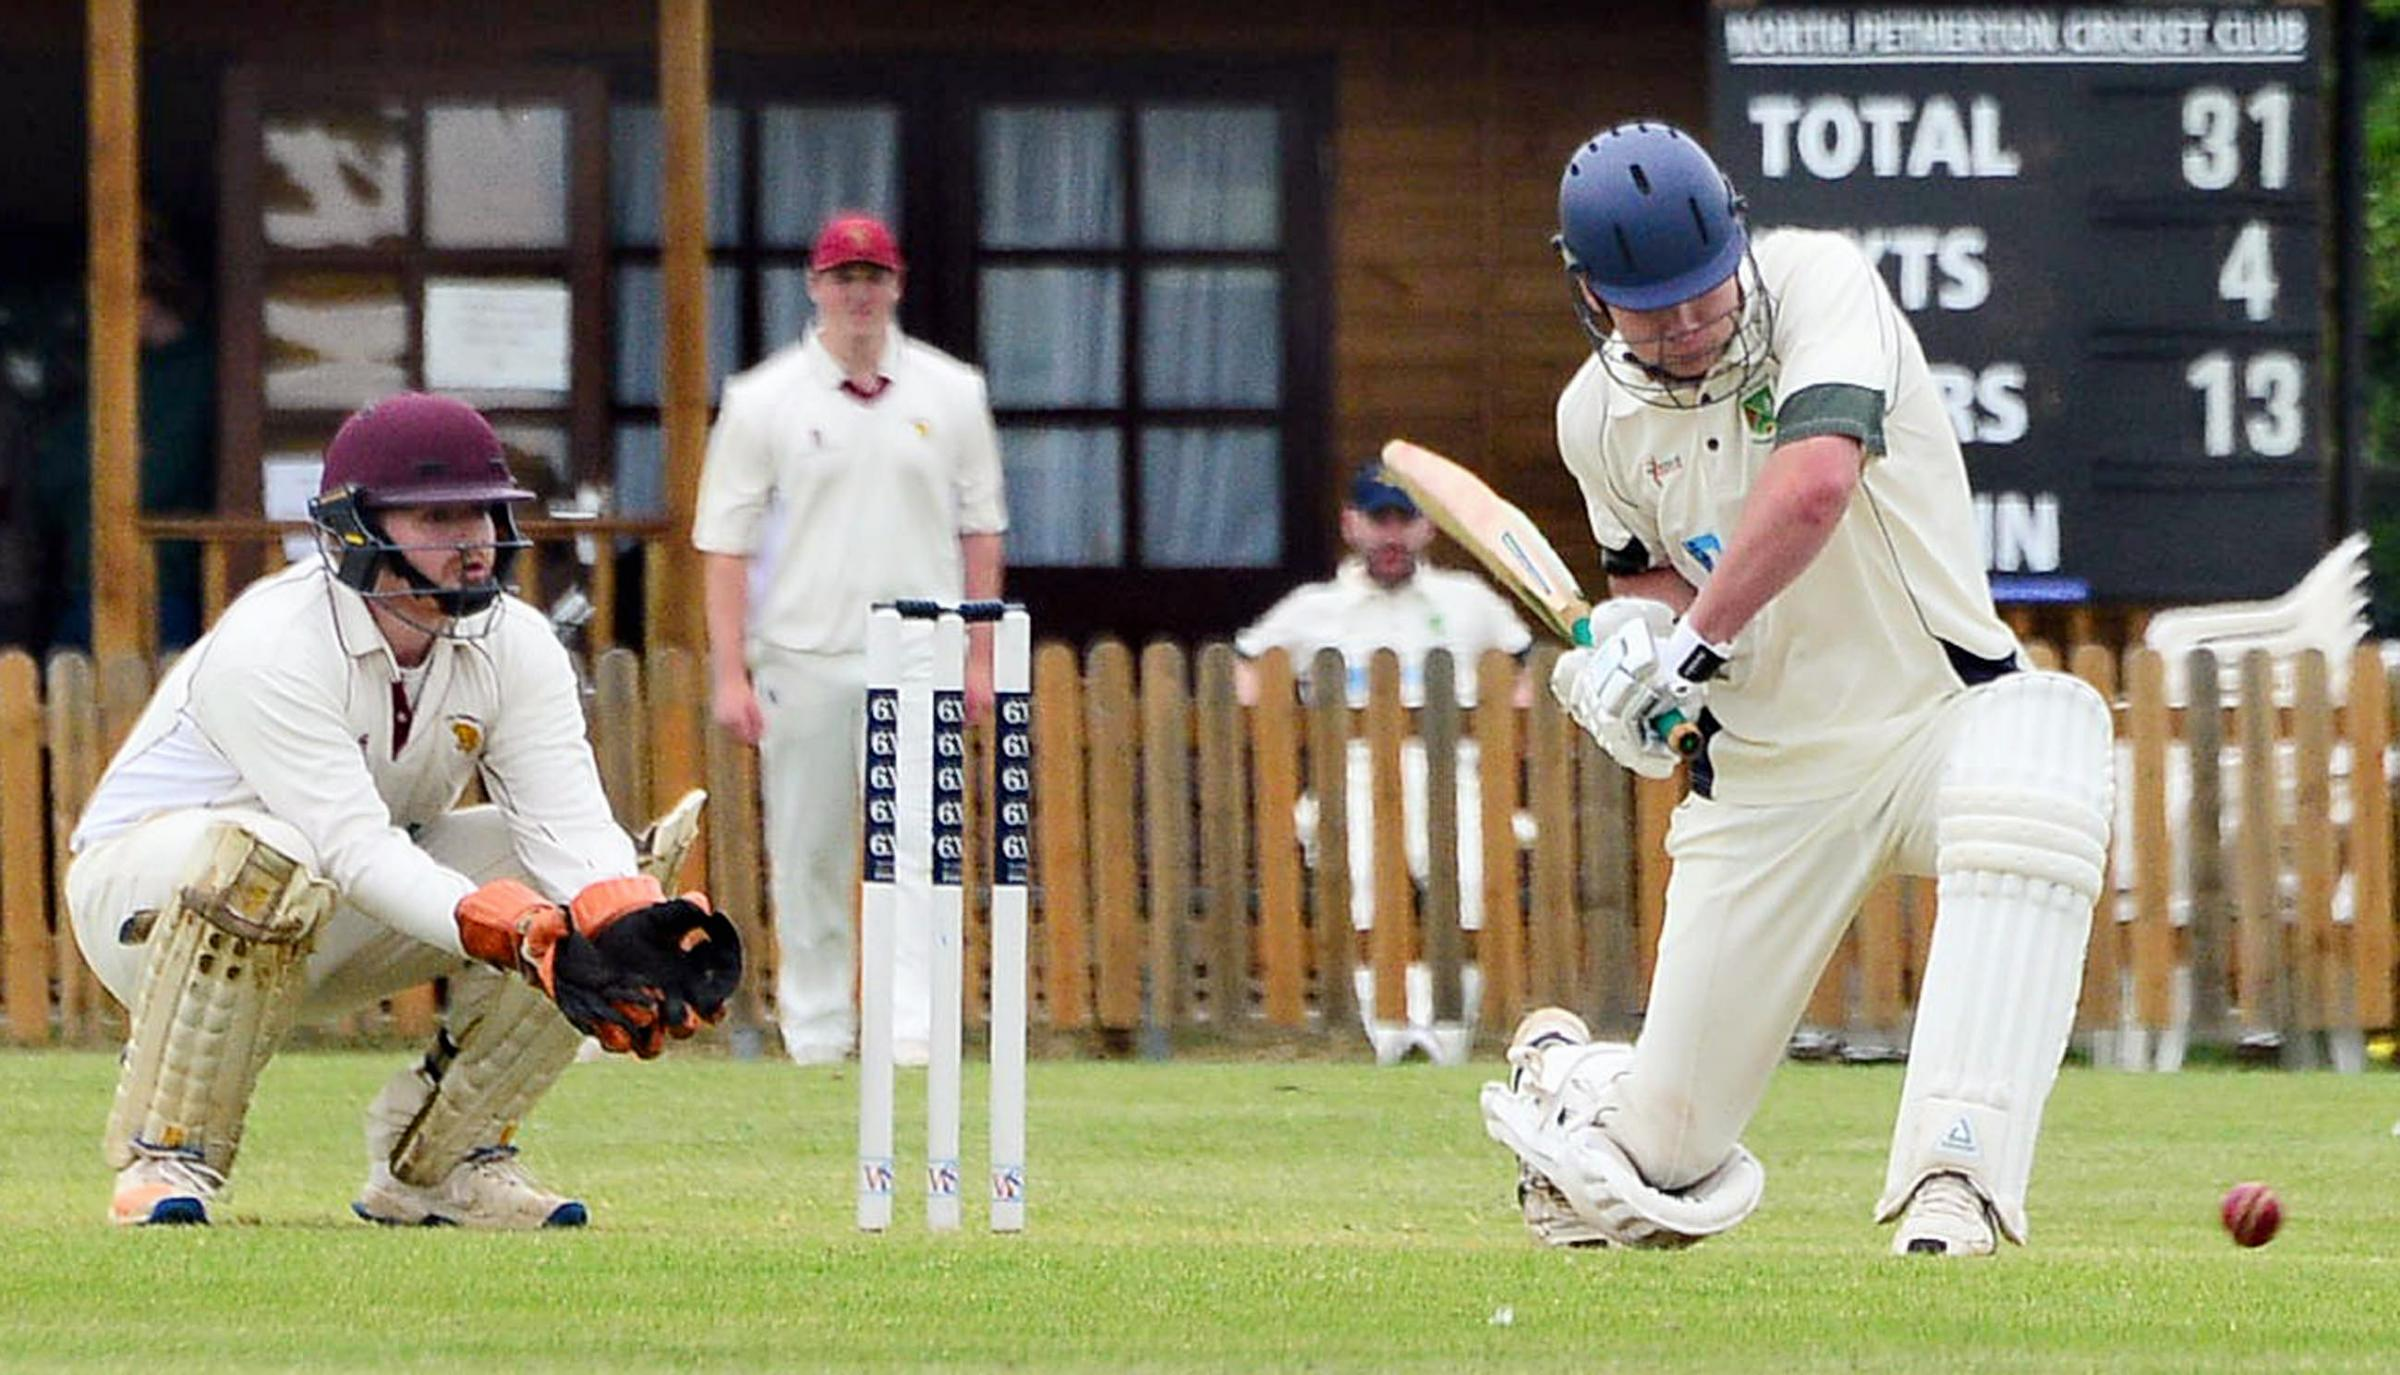 HITTING OUT: North Petherton's Tom Williams in action against North Perrott.